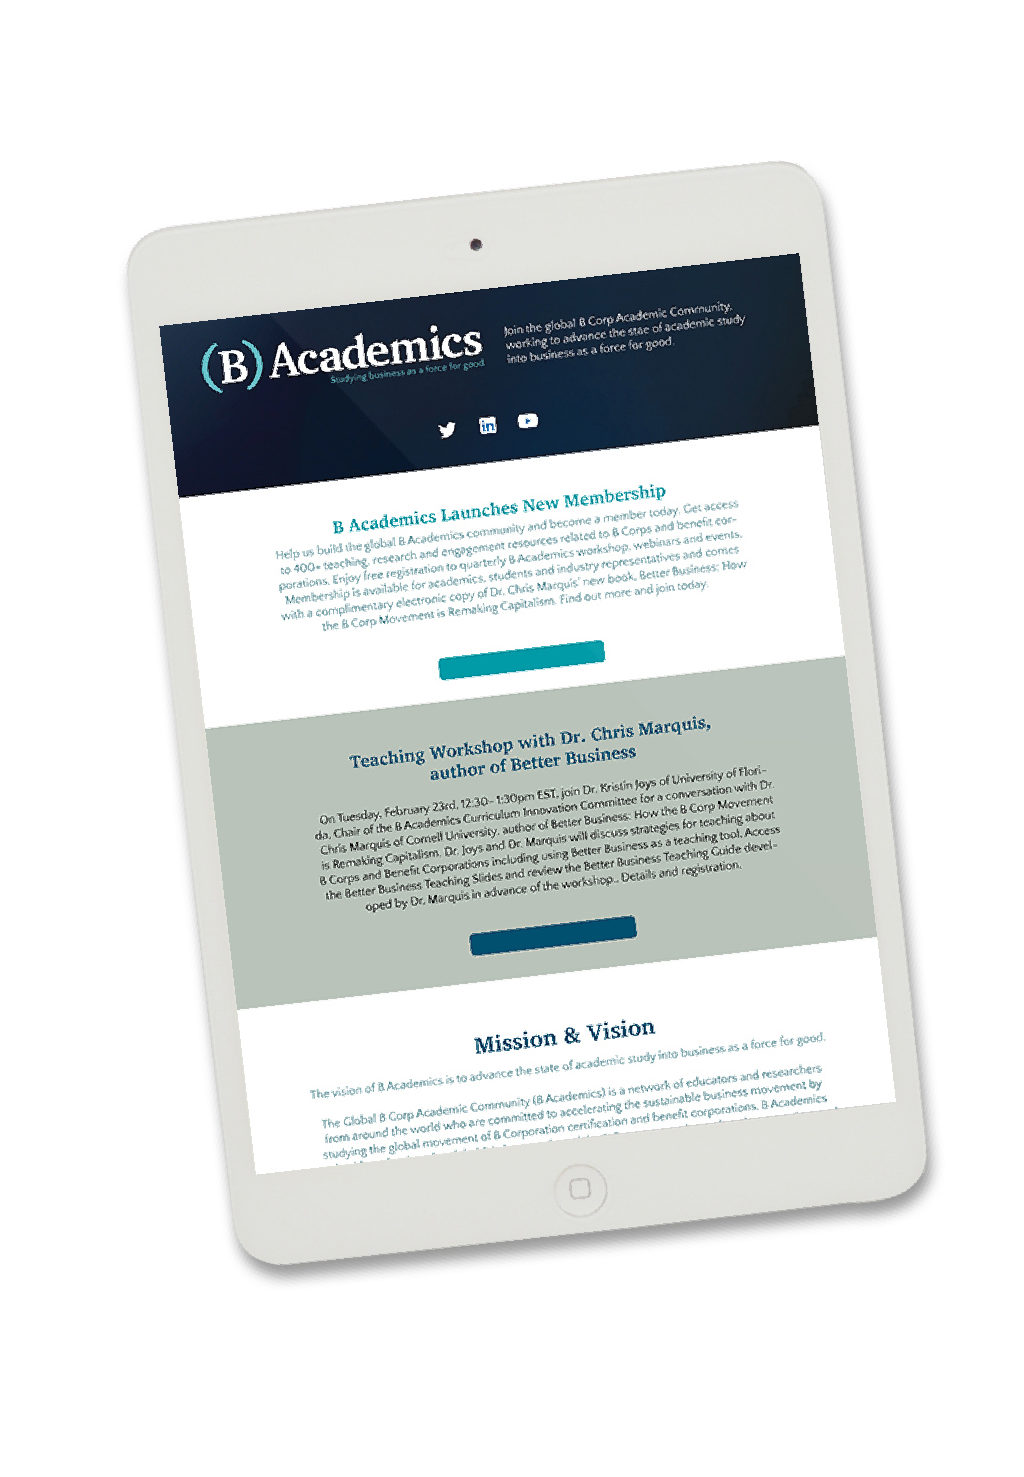 B Academics Website on iPad